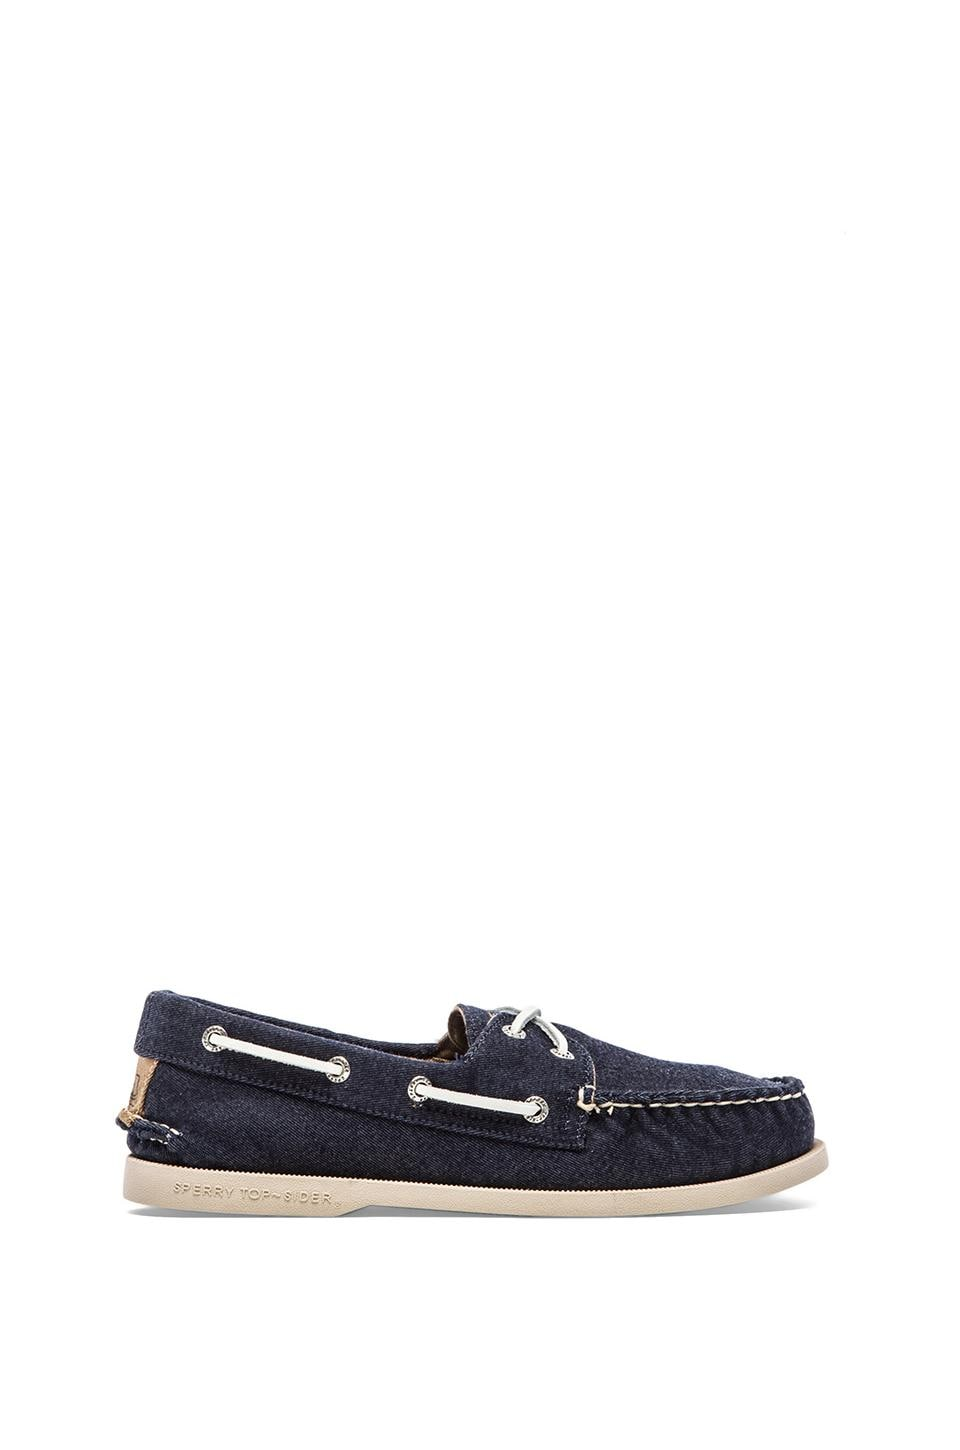 Sperry Top-Sider A/O 2-Eye Soft Canvas in Navy